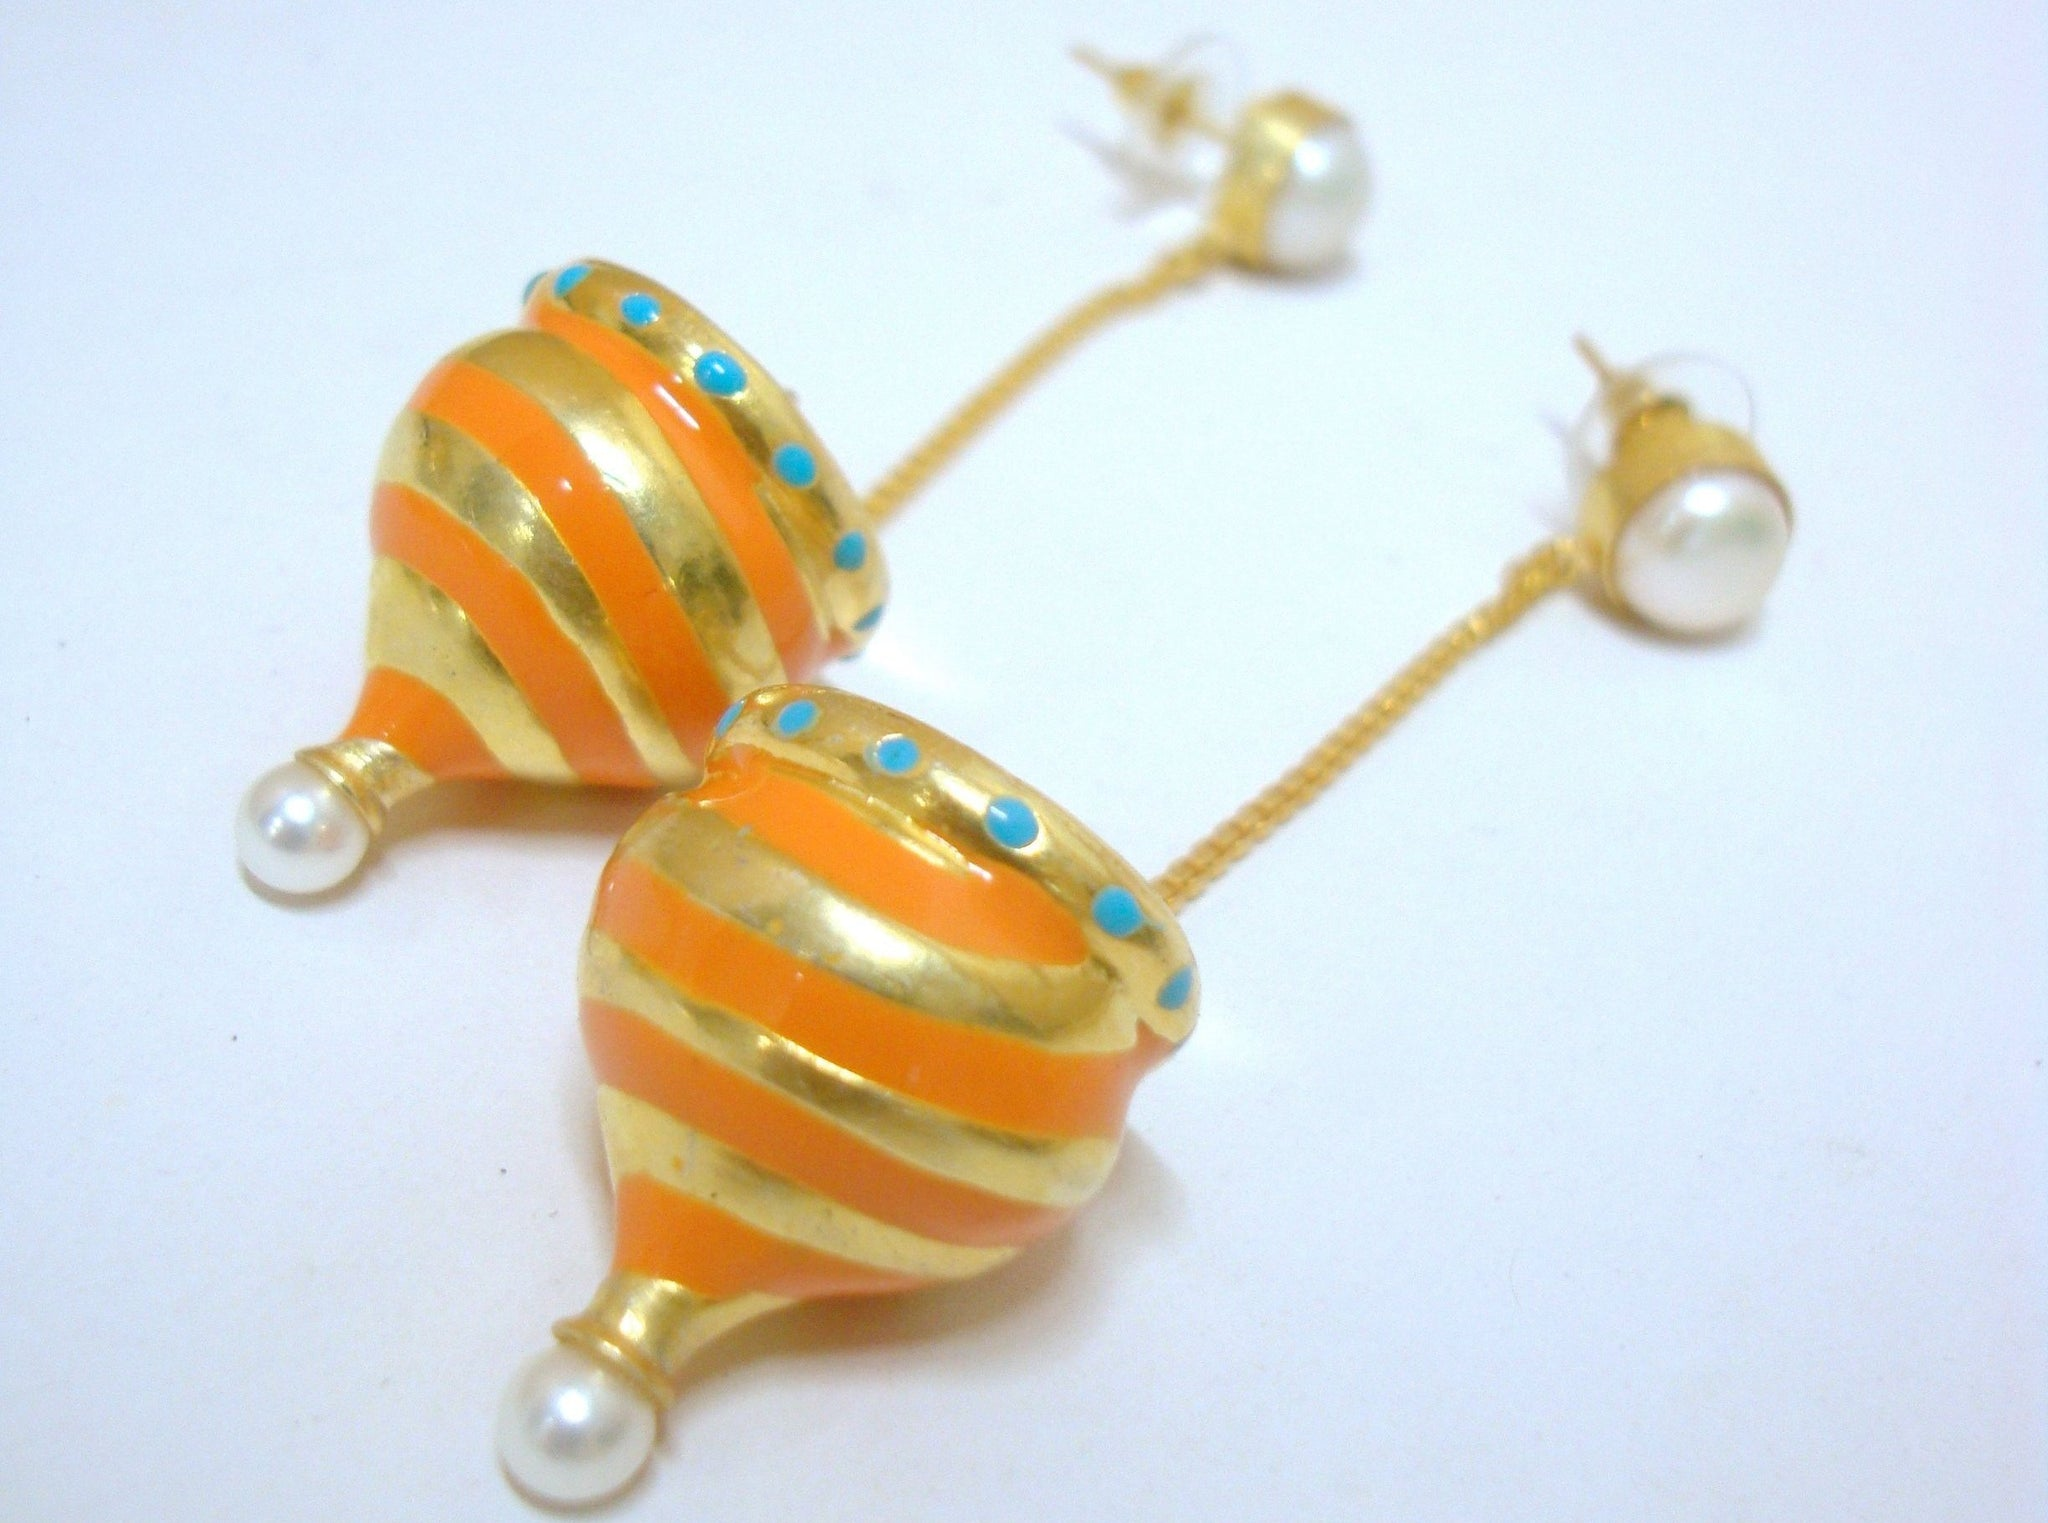 Casa Mila Orange Dome Earrings - Riddhika Jesrani